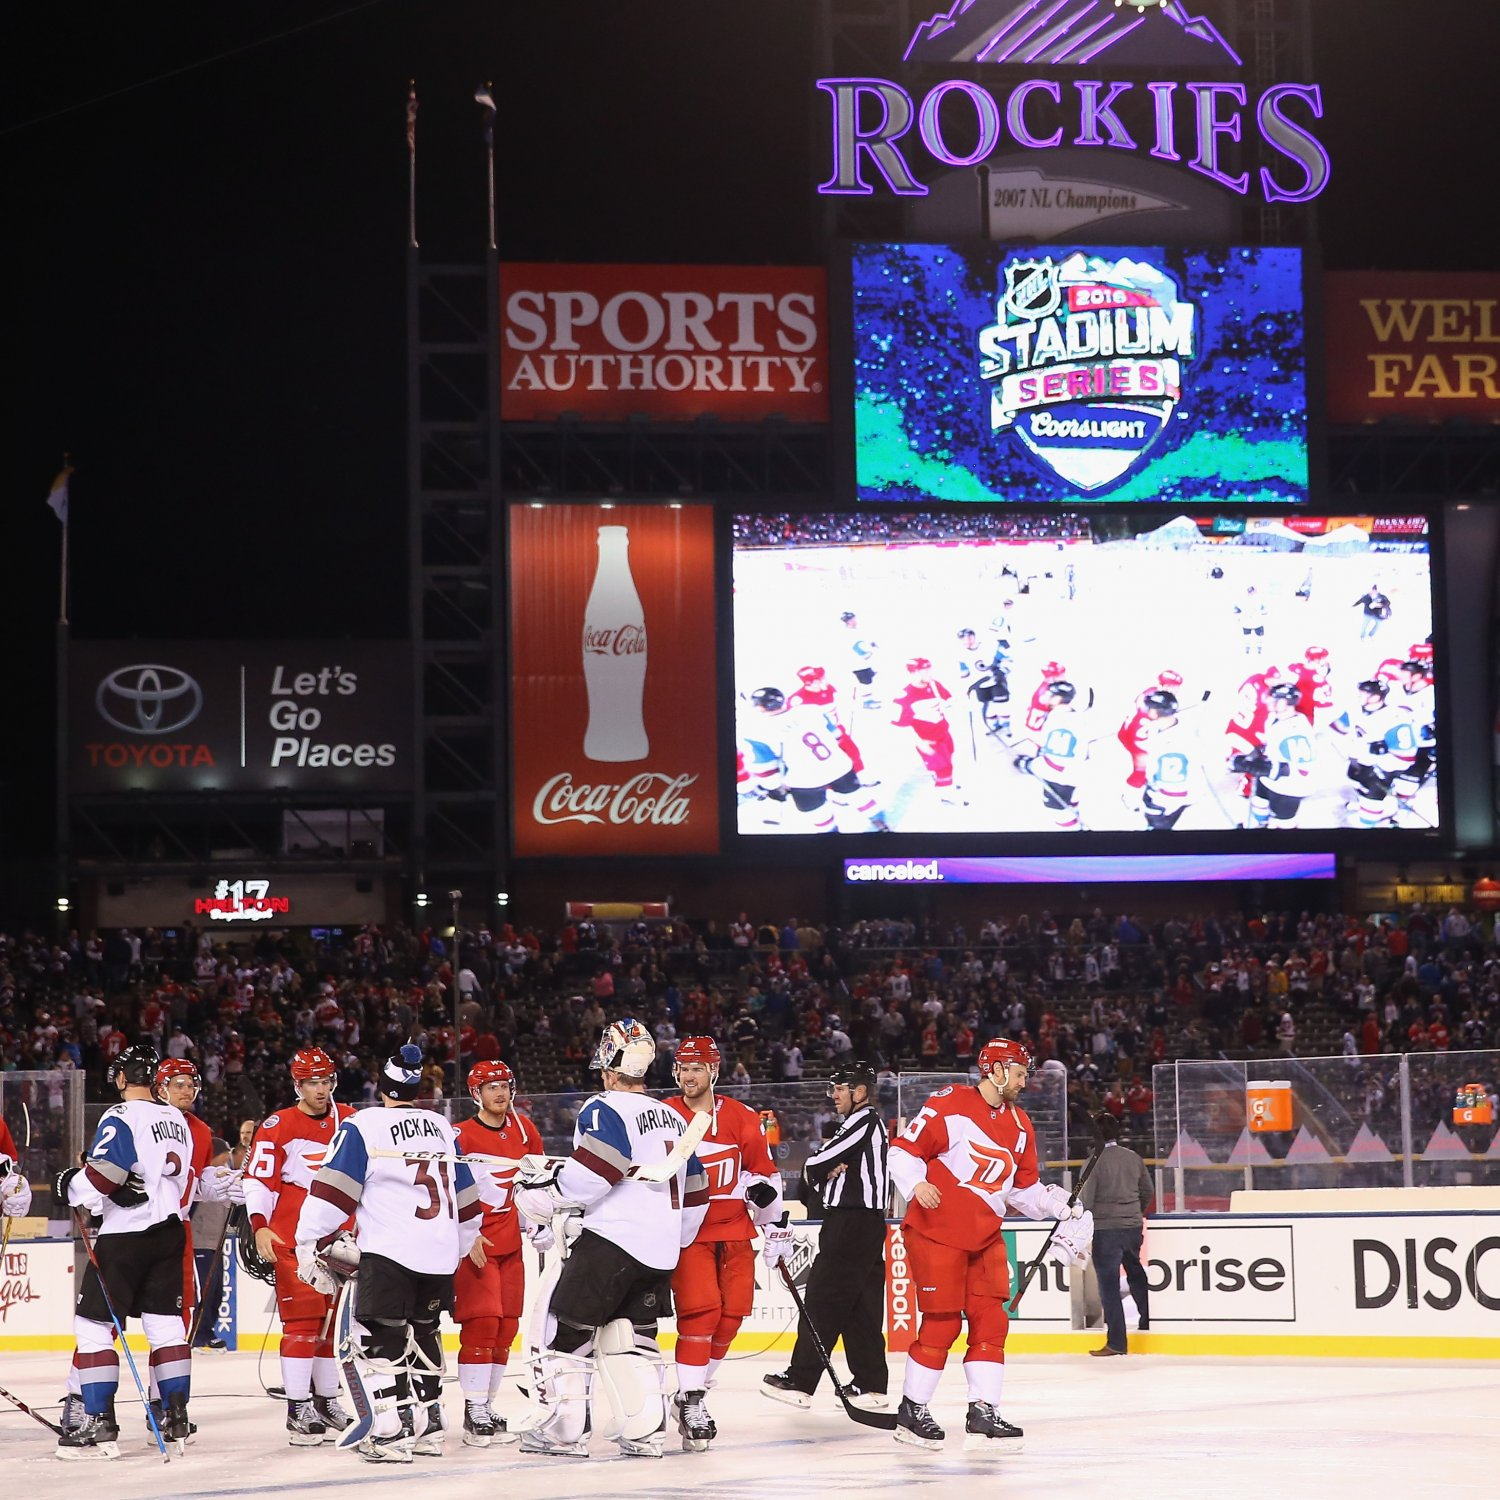 Avalanche Vs. Red Wings: Score, Highlights, Reaction From